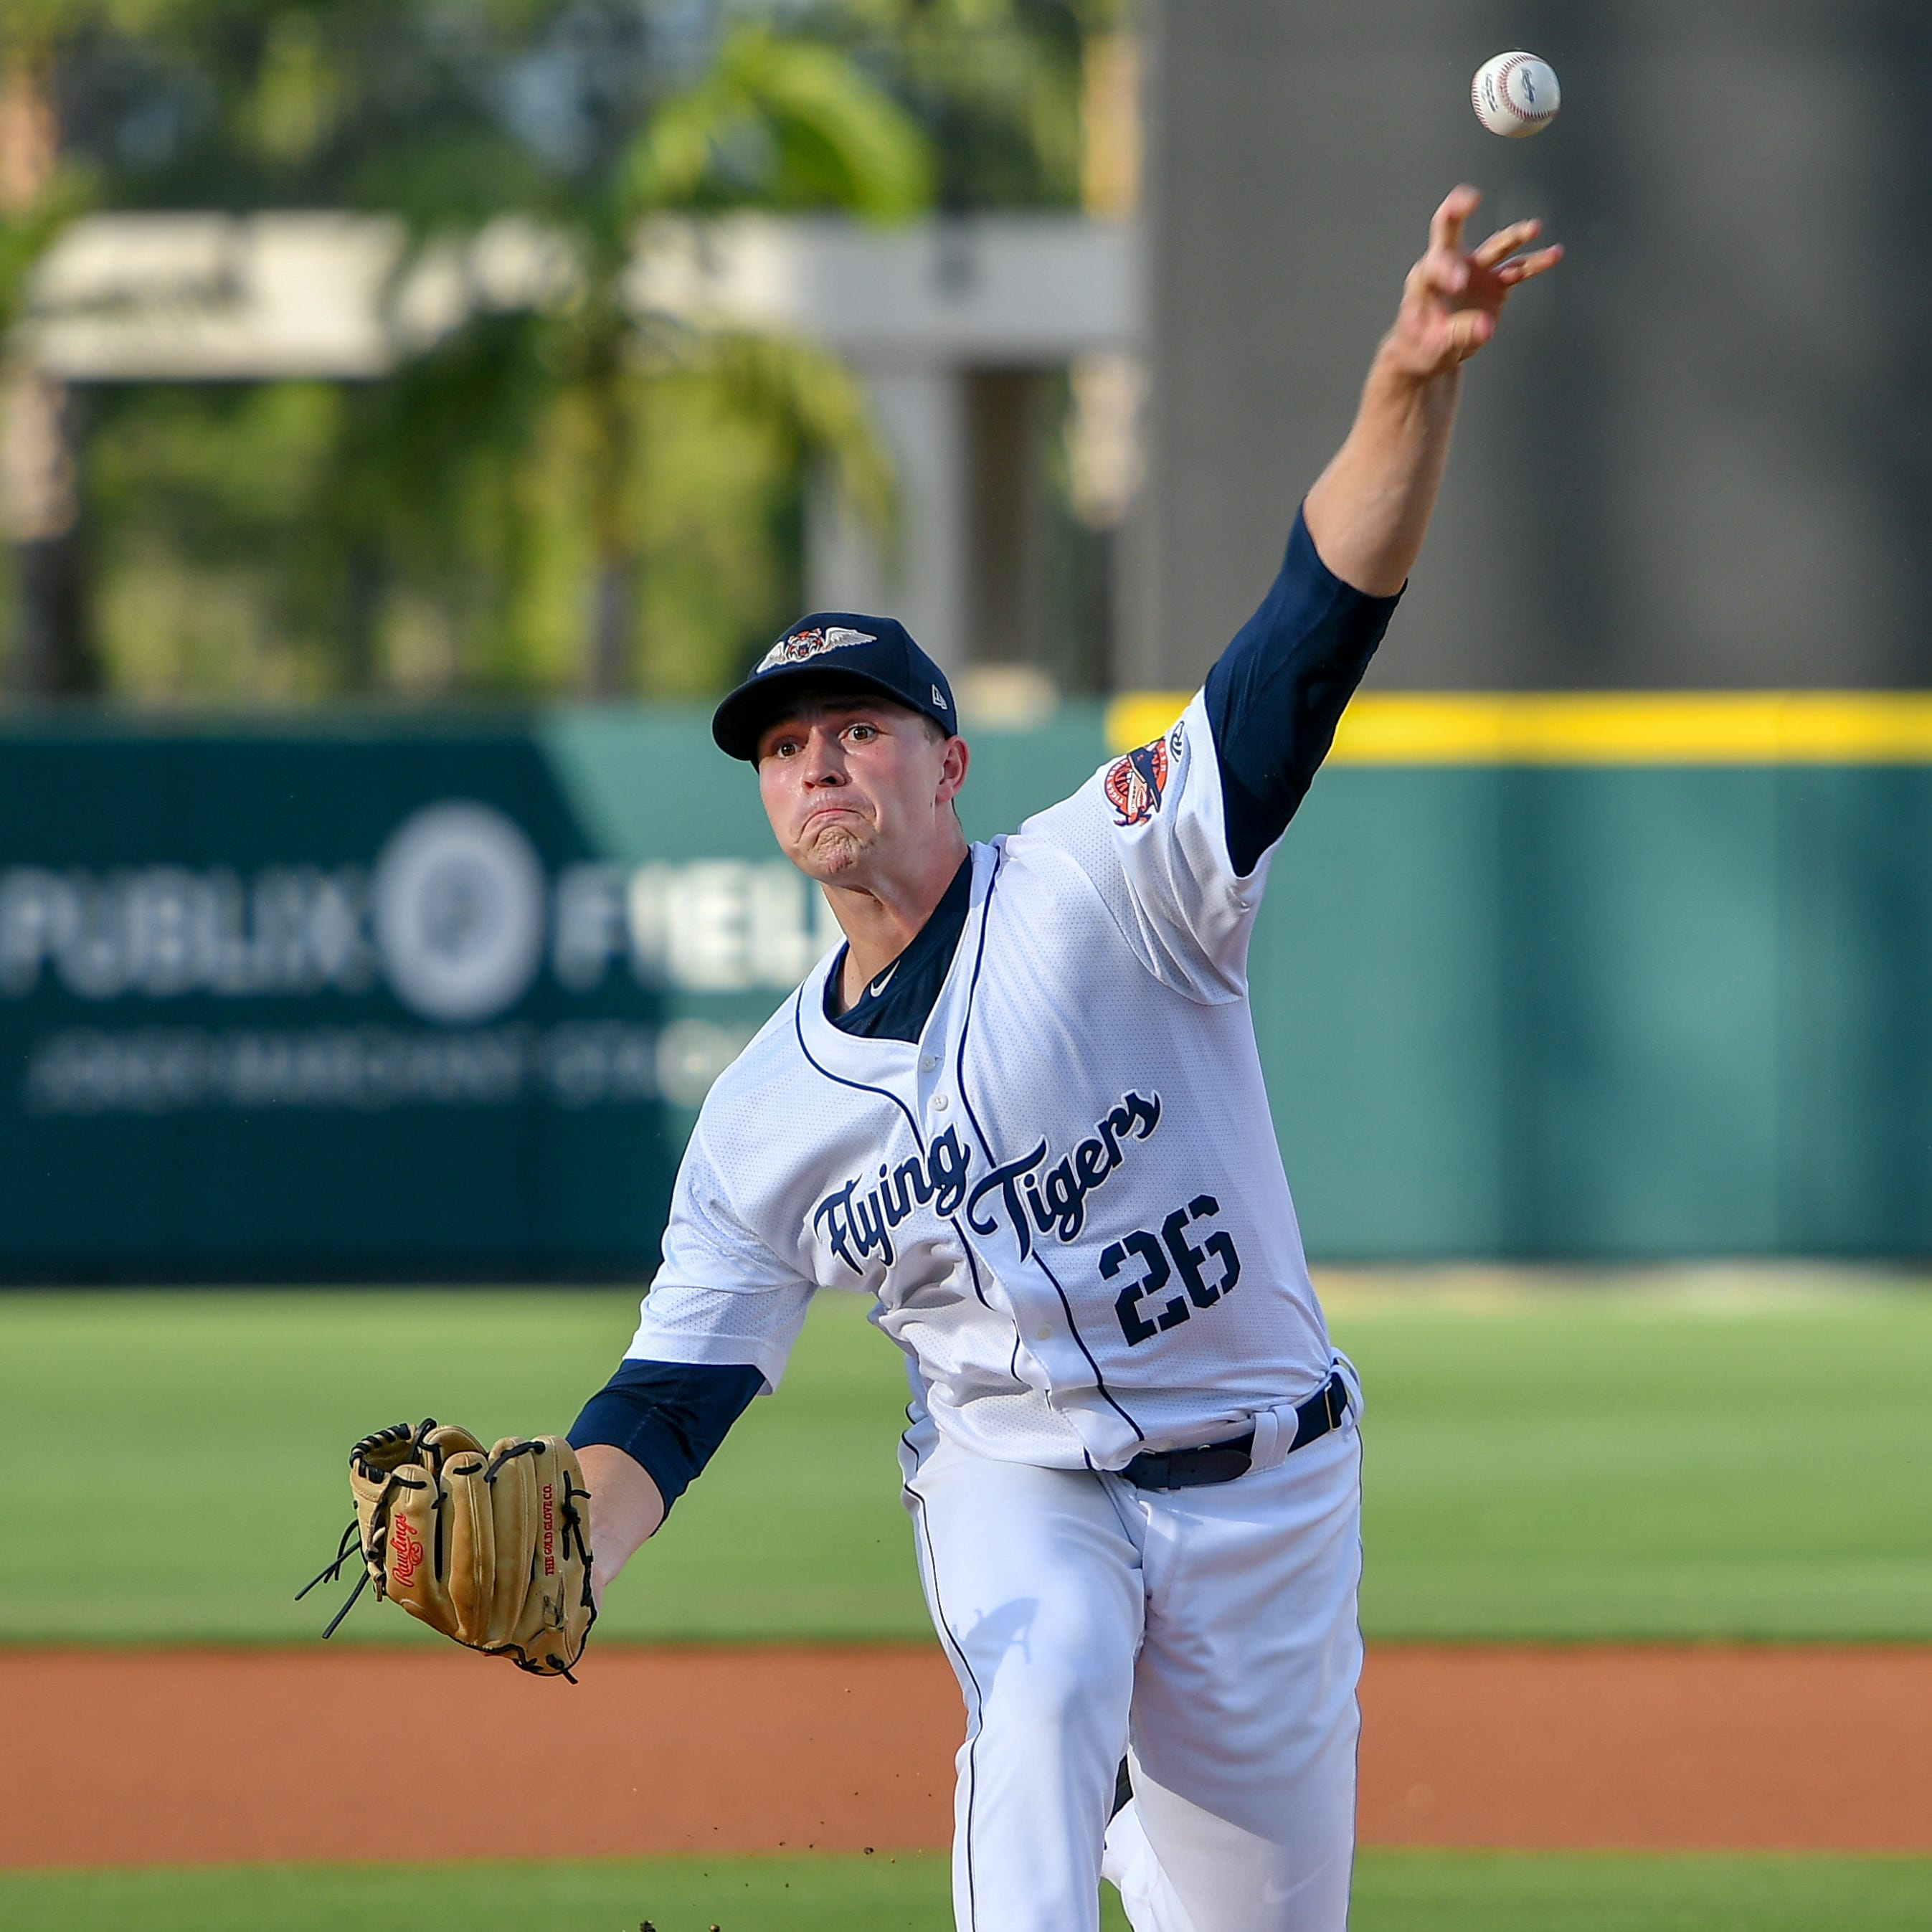 Meet Detroit Tigers lefty prospect Tarik Skubal, maybe the steal of 2018 draft